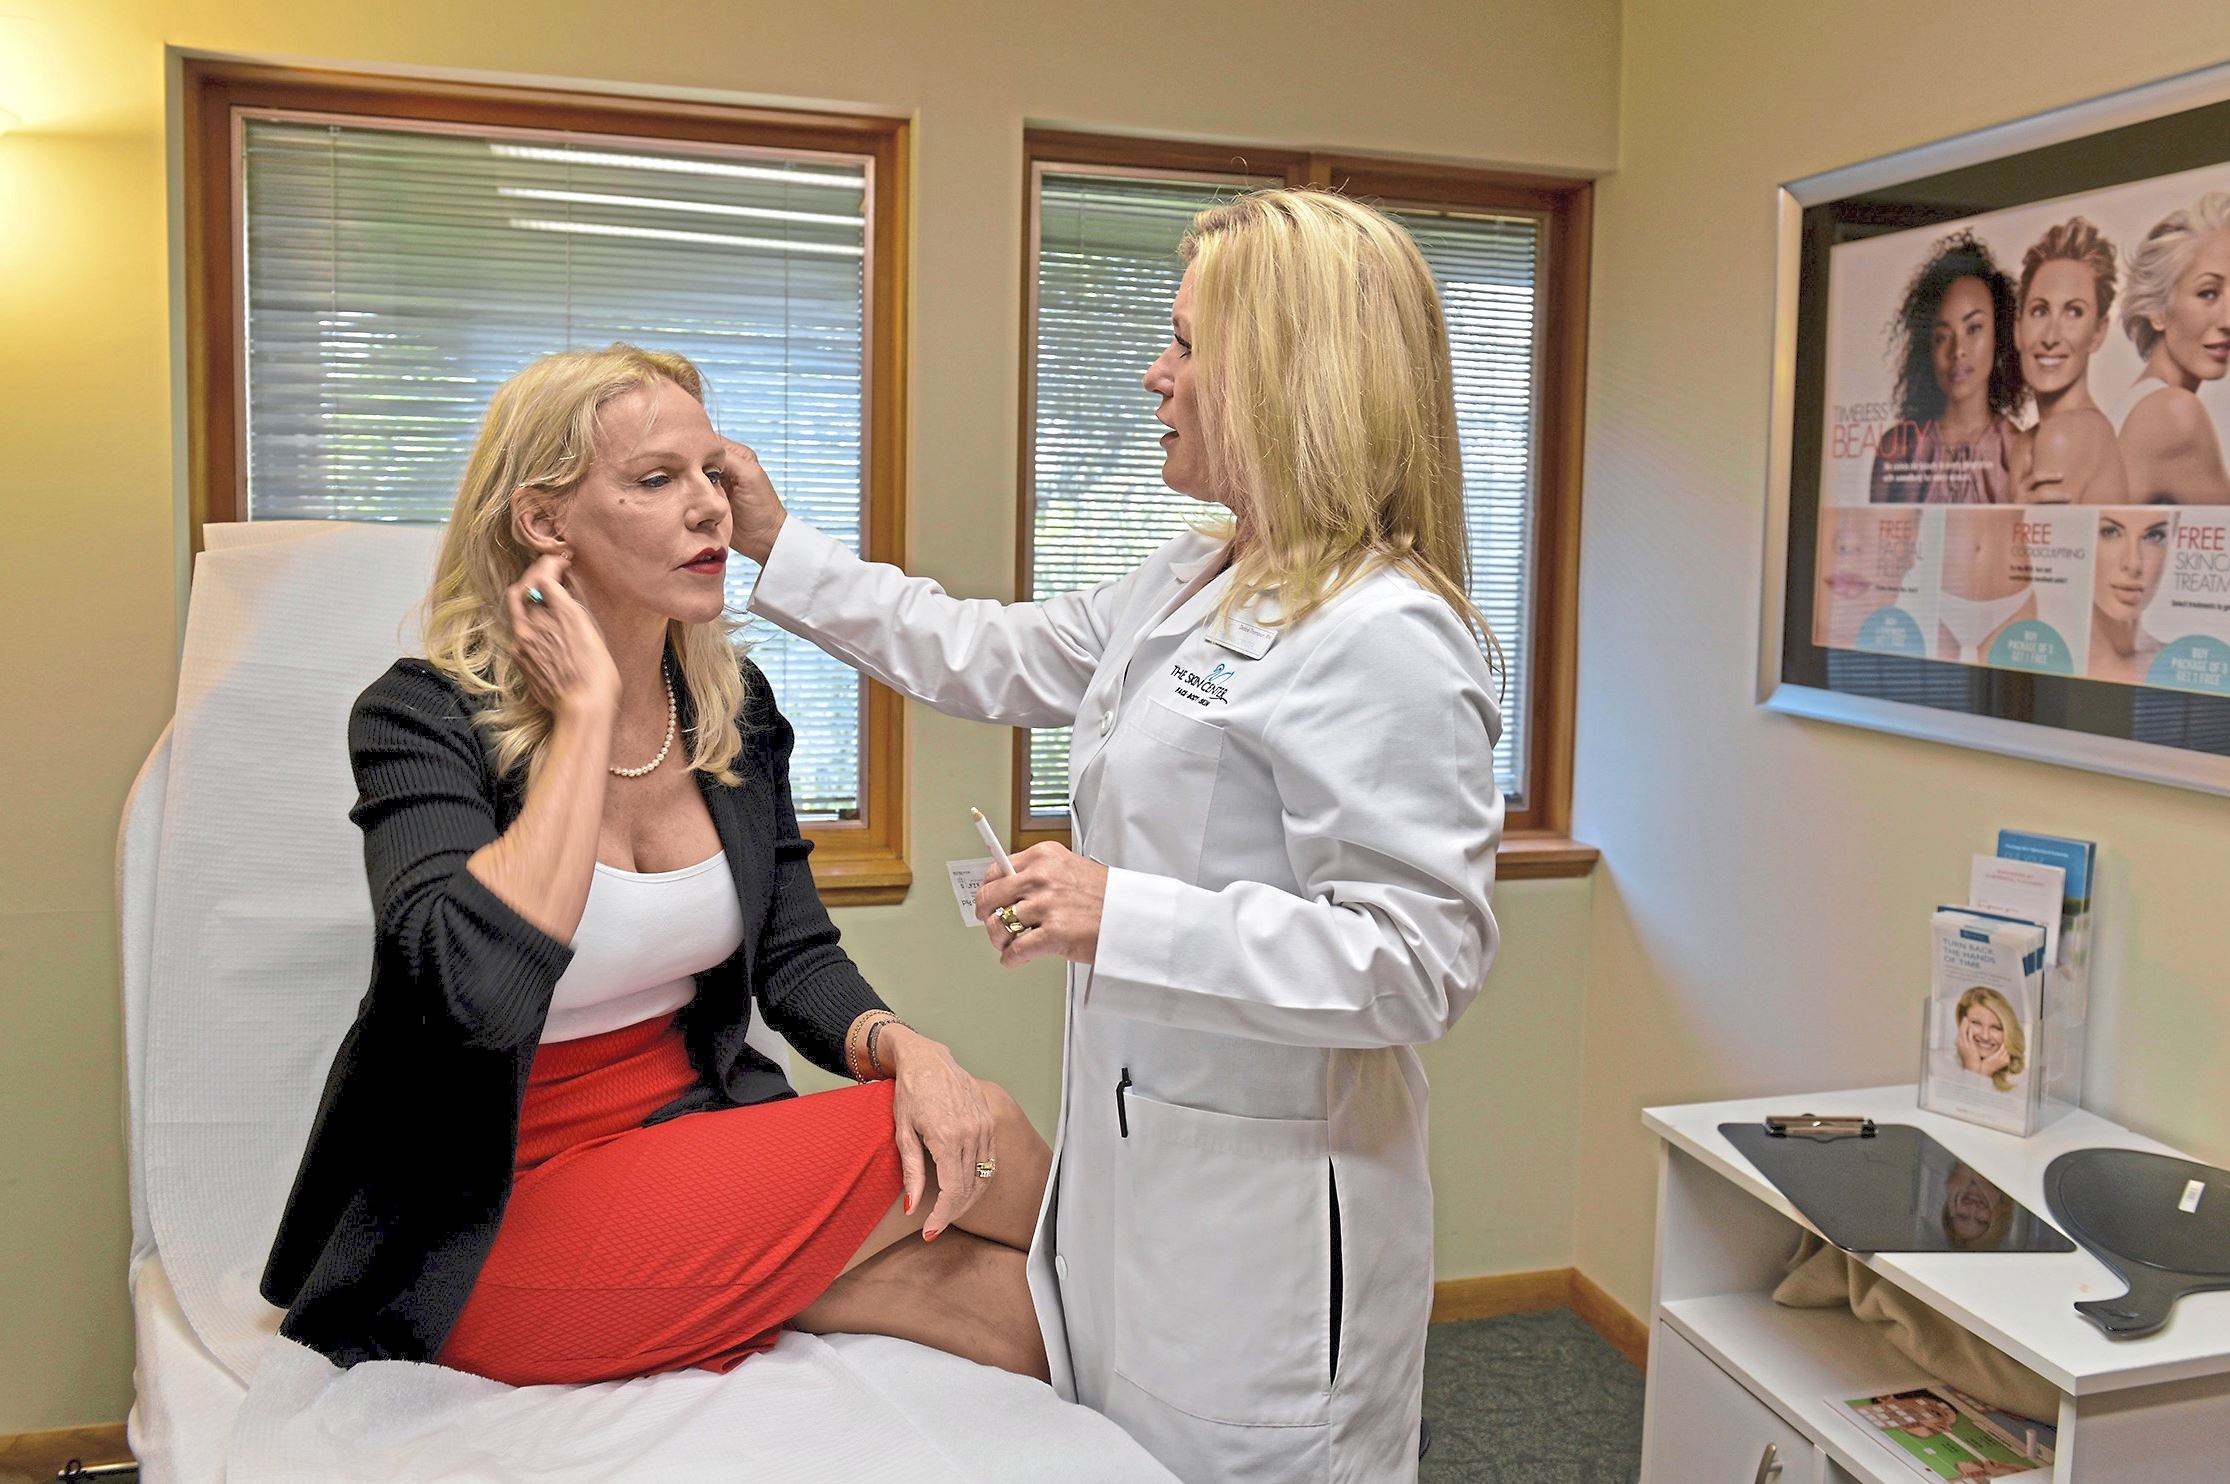 20170802ppCosmeticSurgery1NEXT_001 Lela Covey discusses the treatment she will be receiving with Debbie Thompson, RN, during an appointment at the Skin Center Med Spa in Mt. Lebanon.